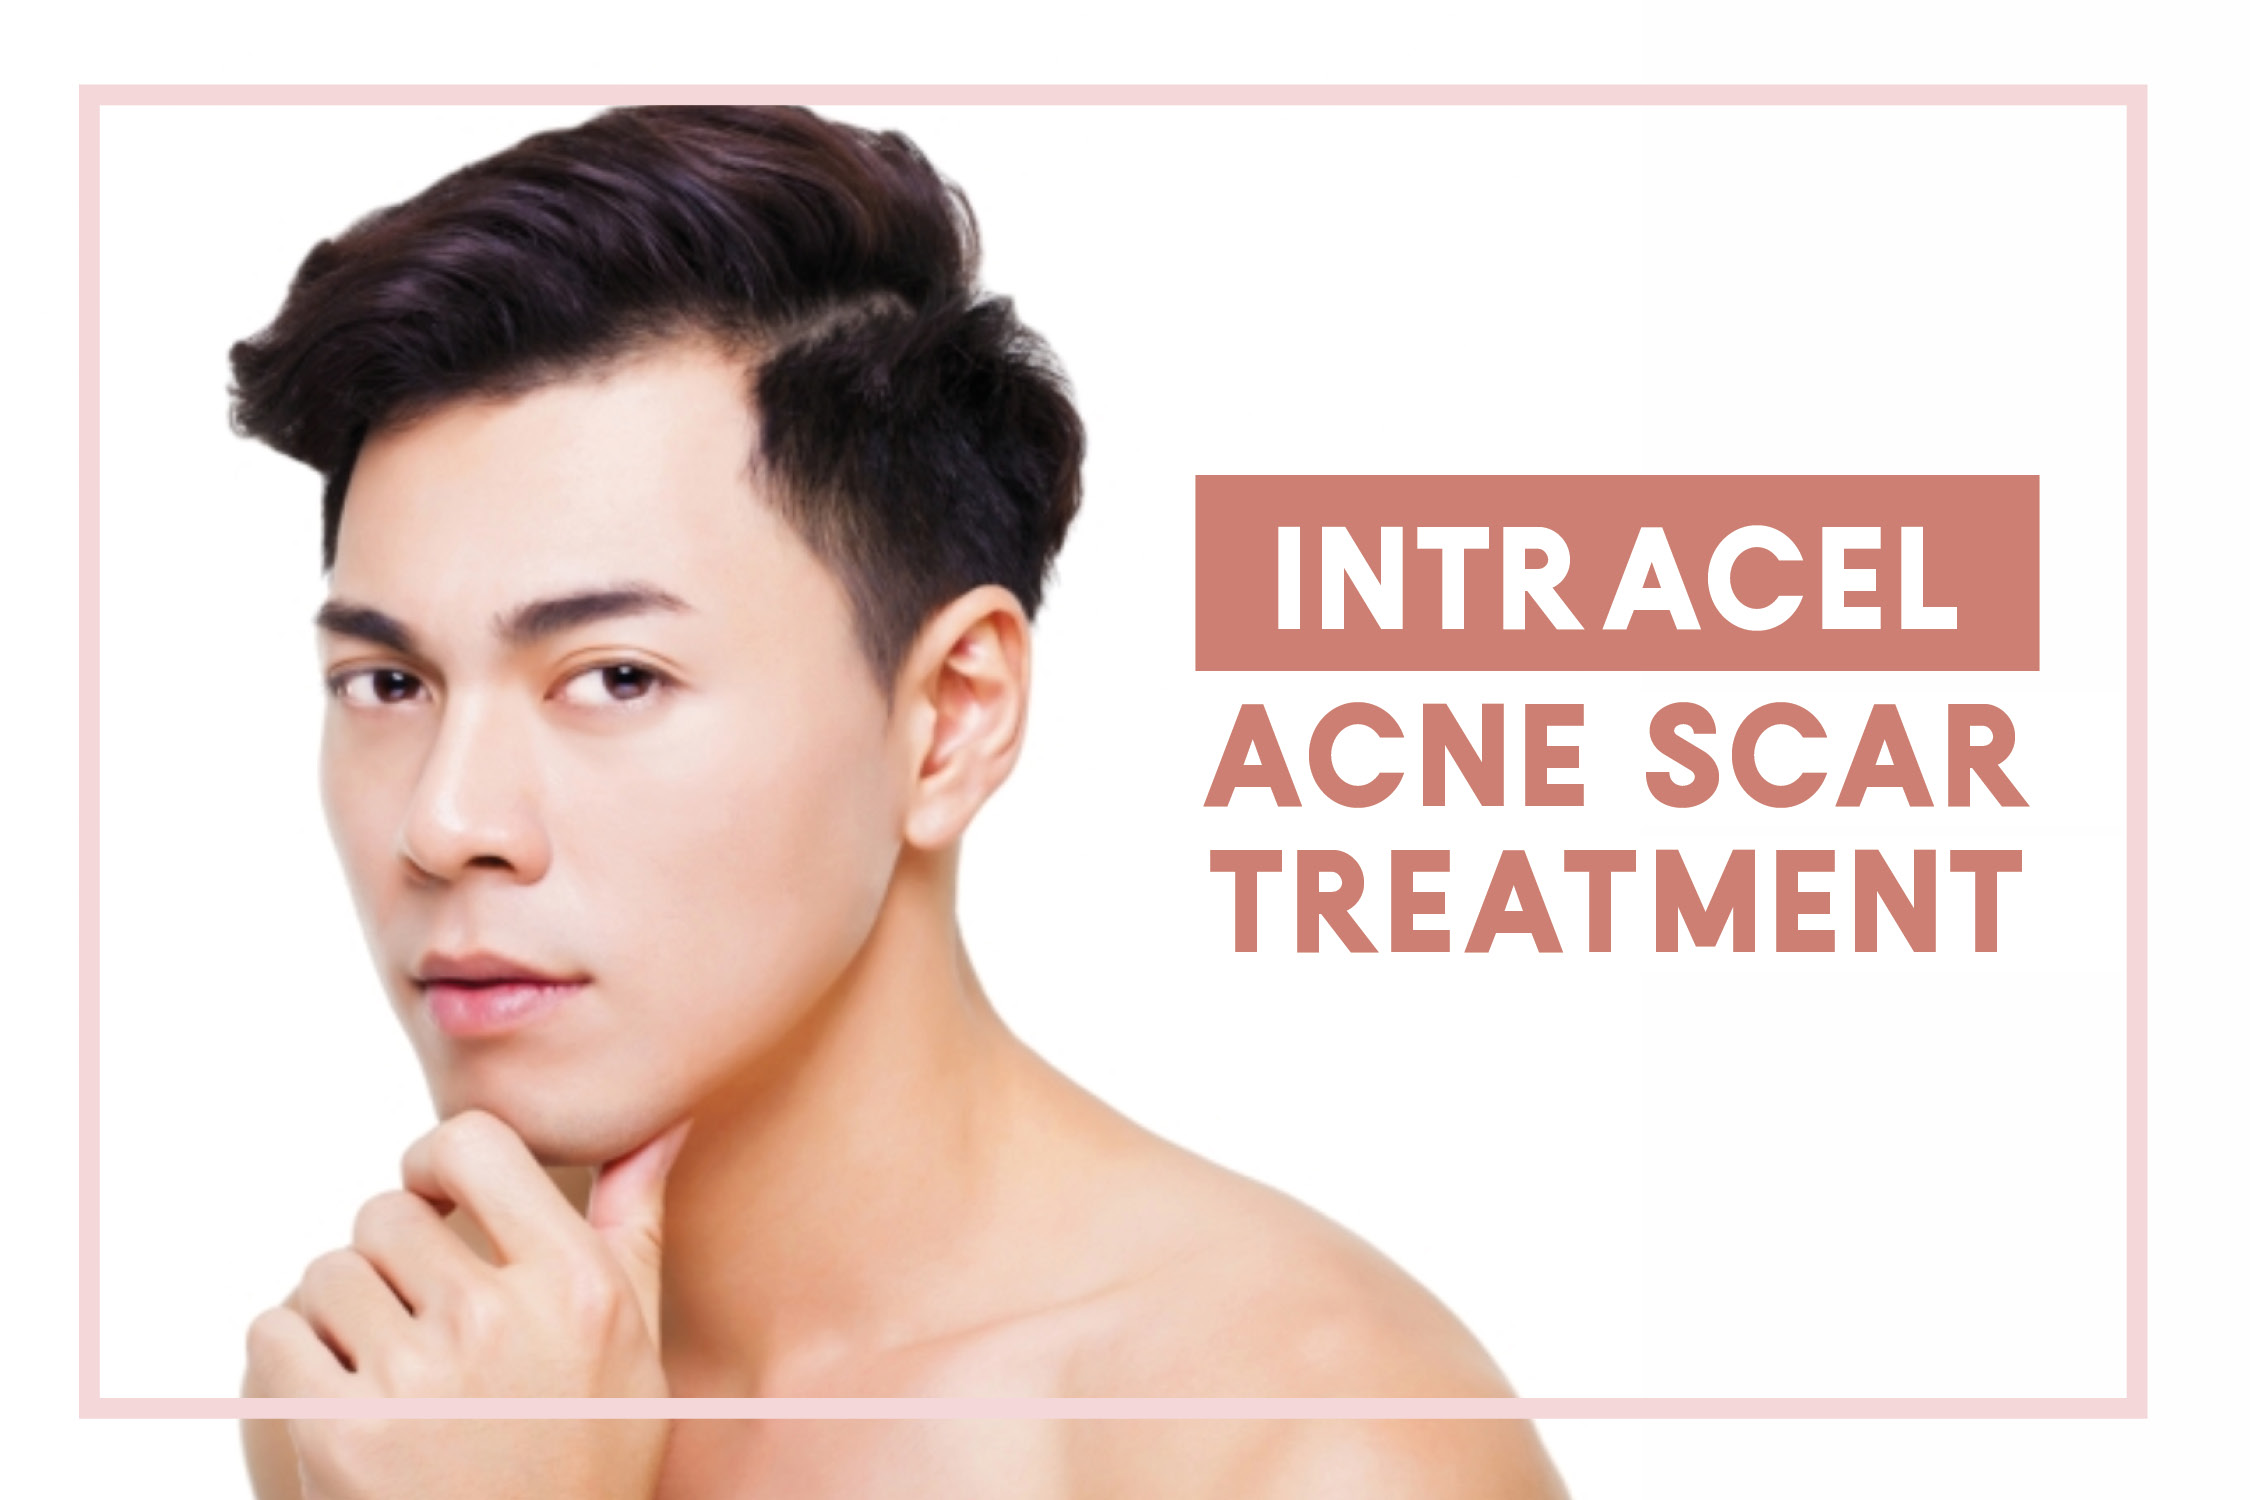 Intracel Acne Scars Treatment